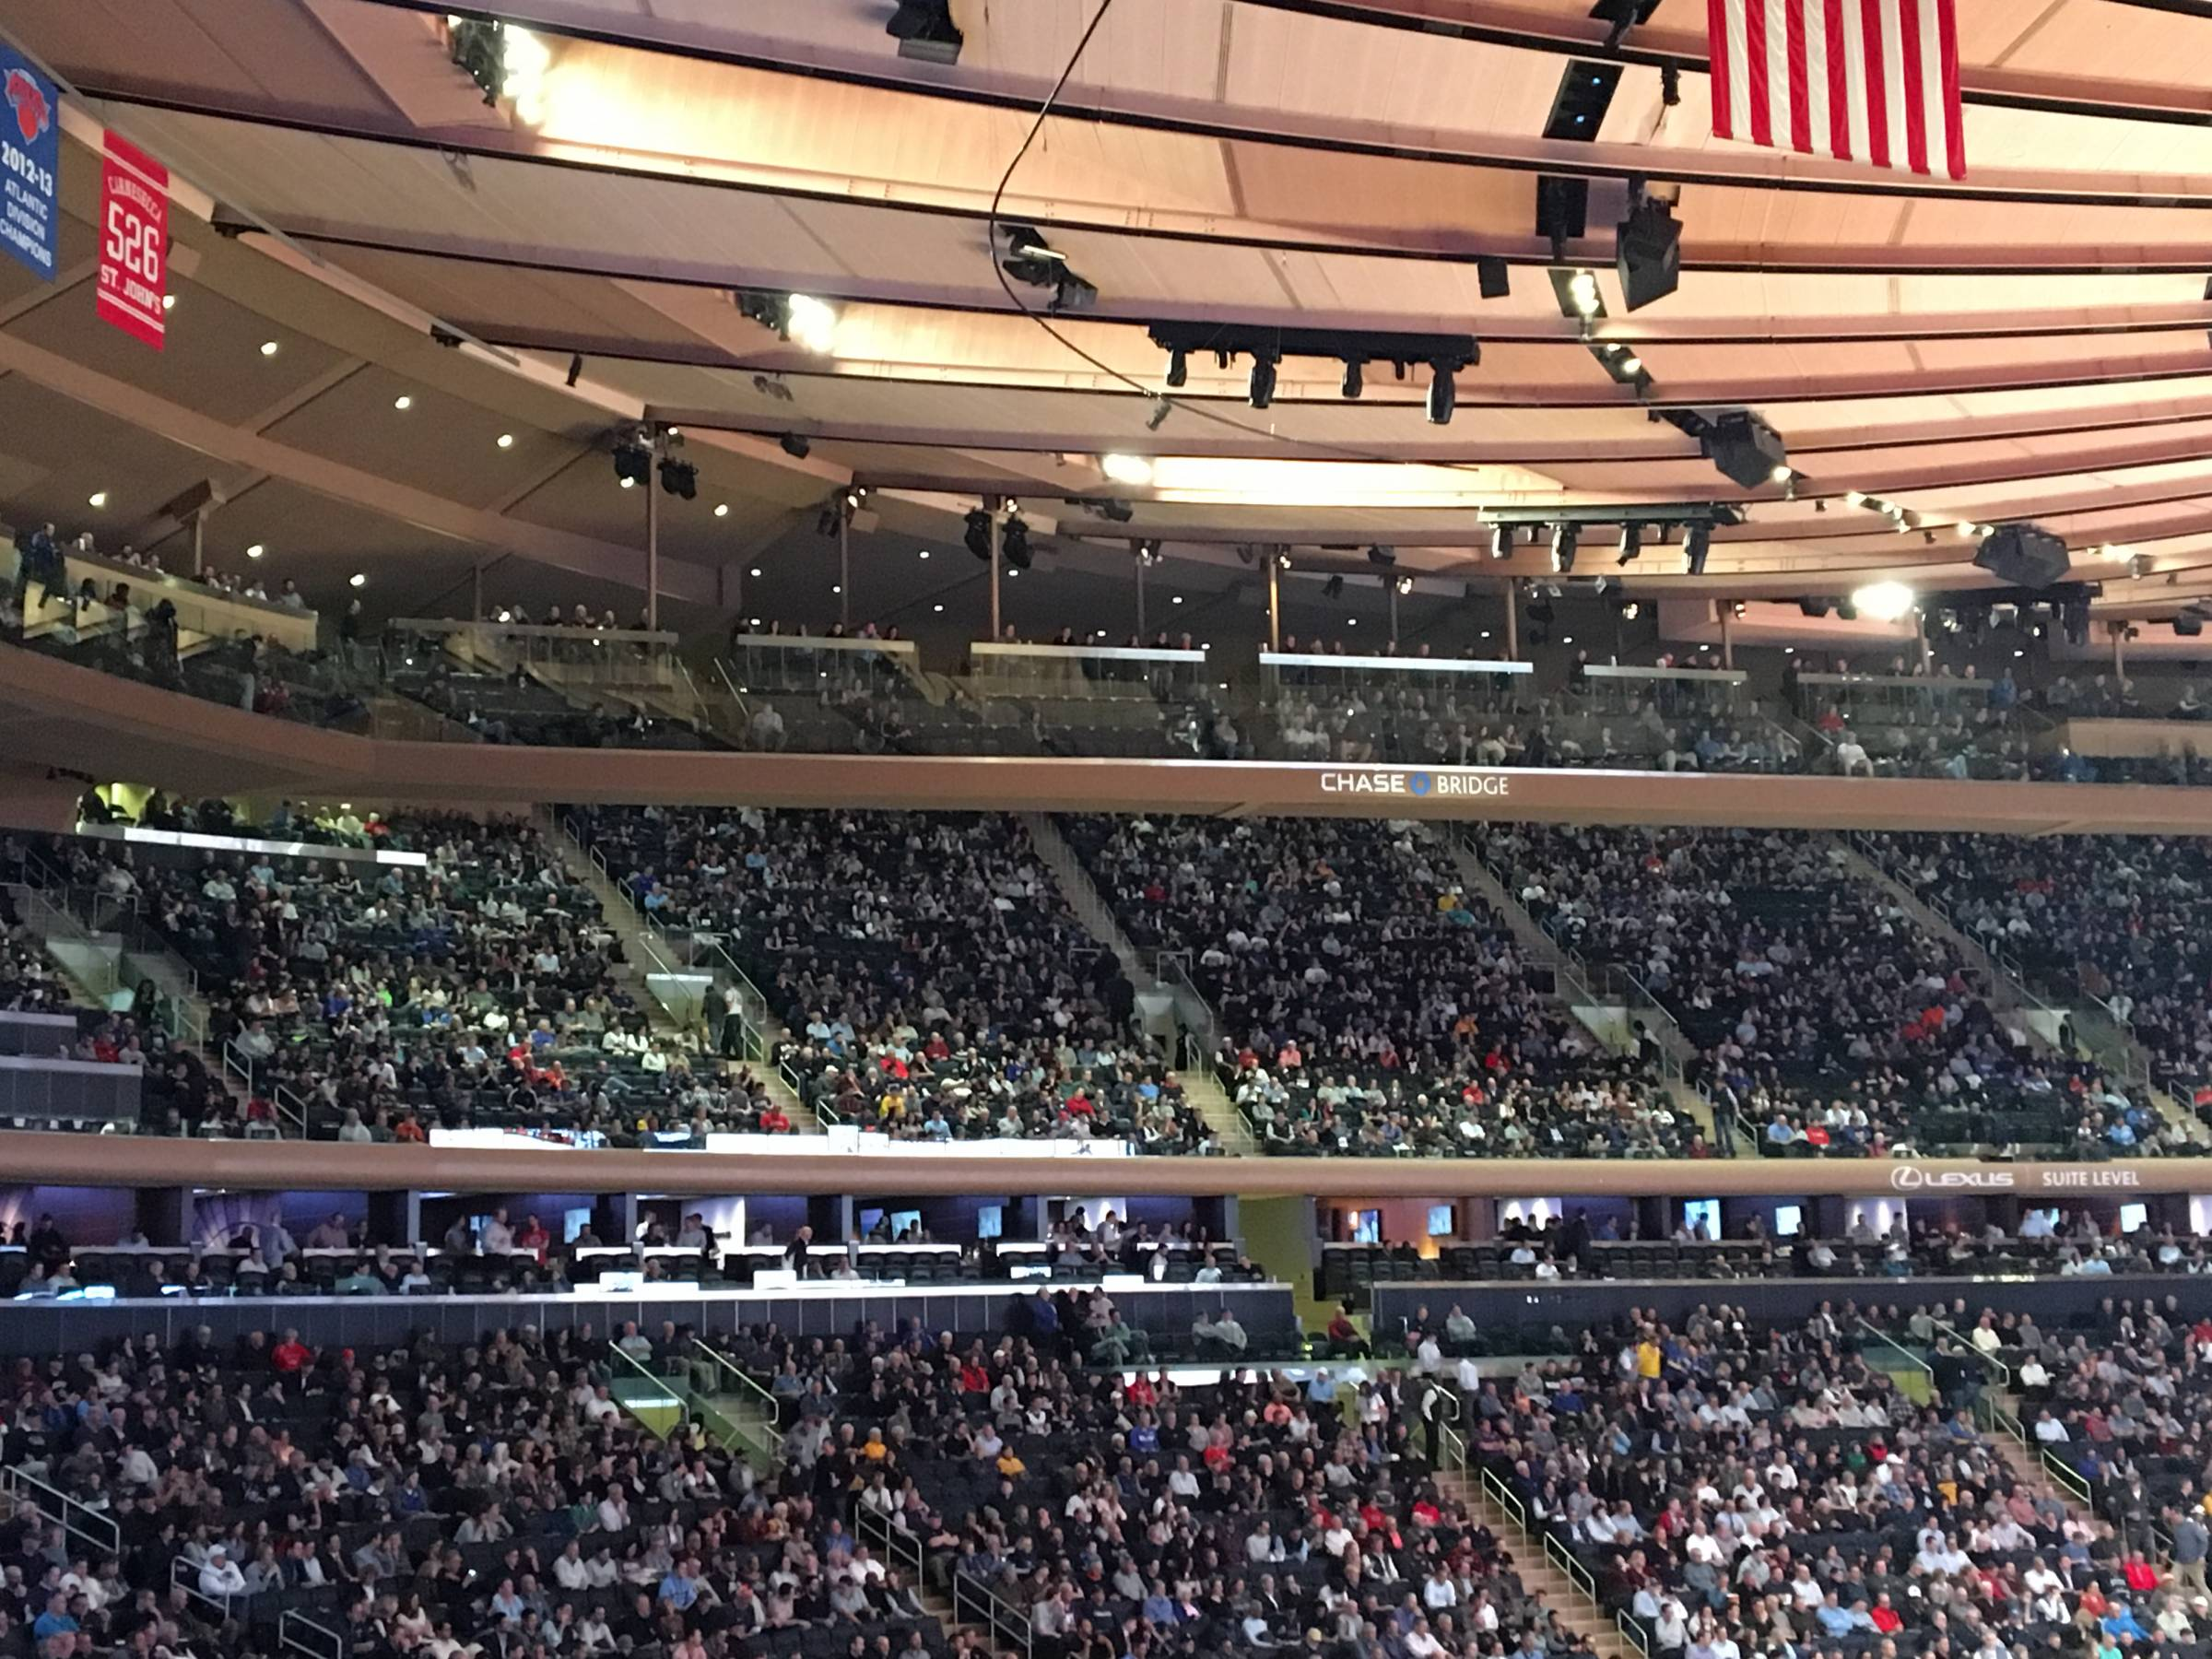 View from across Chase Bridges at Madison Square Garden